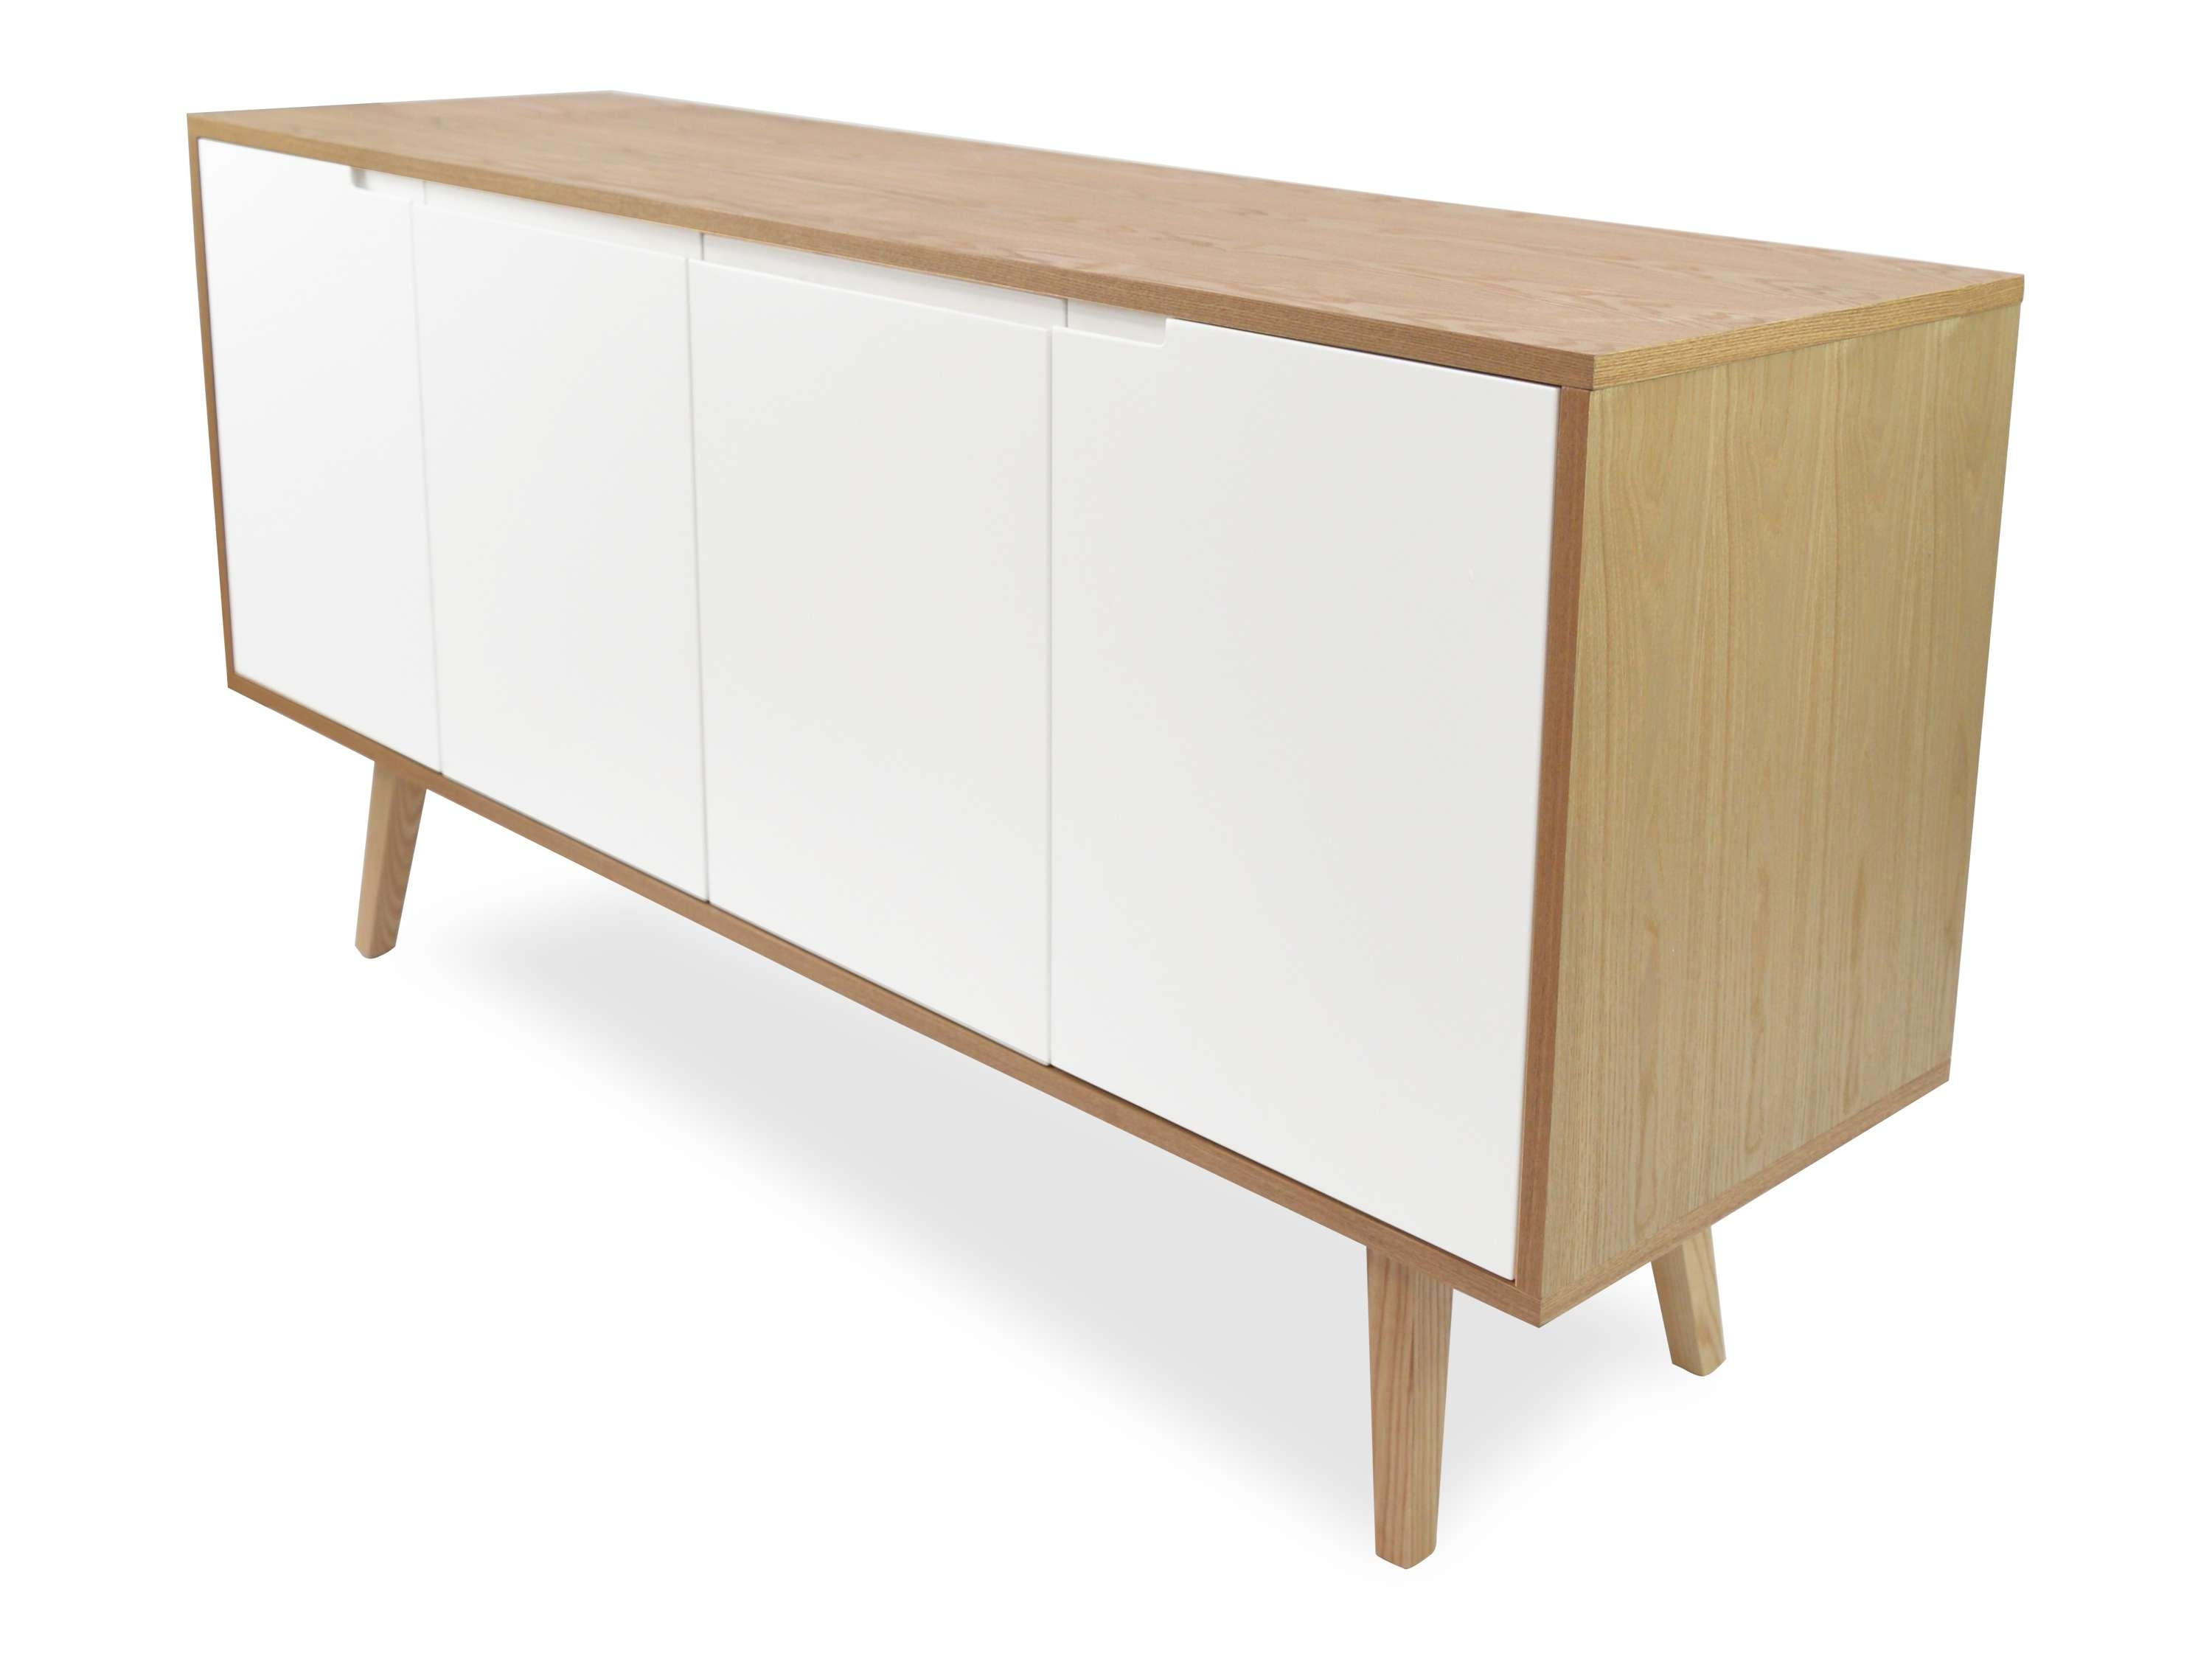 Marc Scandinavian Sideboard Buffet Unit – Natural | Interior Secrets Pertaining To Scandinavian Sideboards (View 3 of 20)